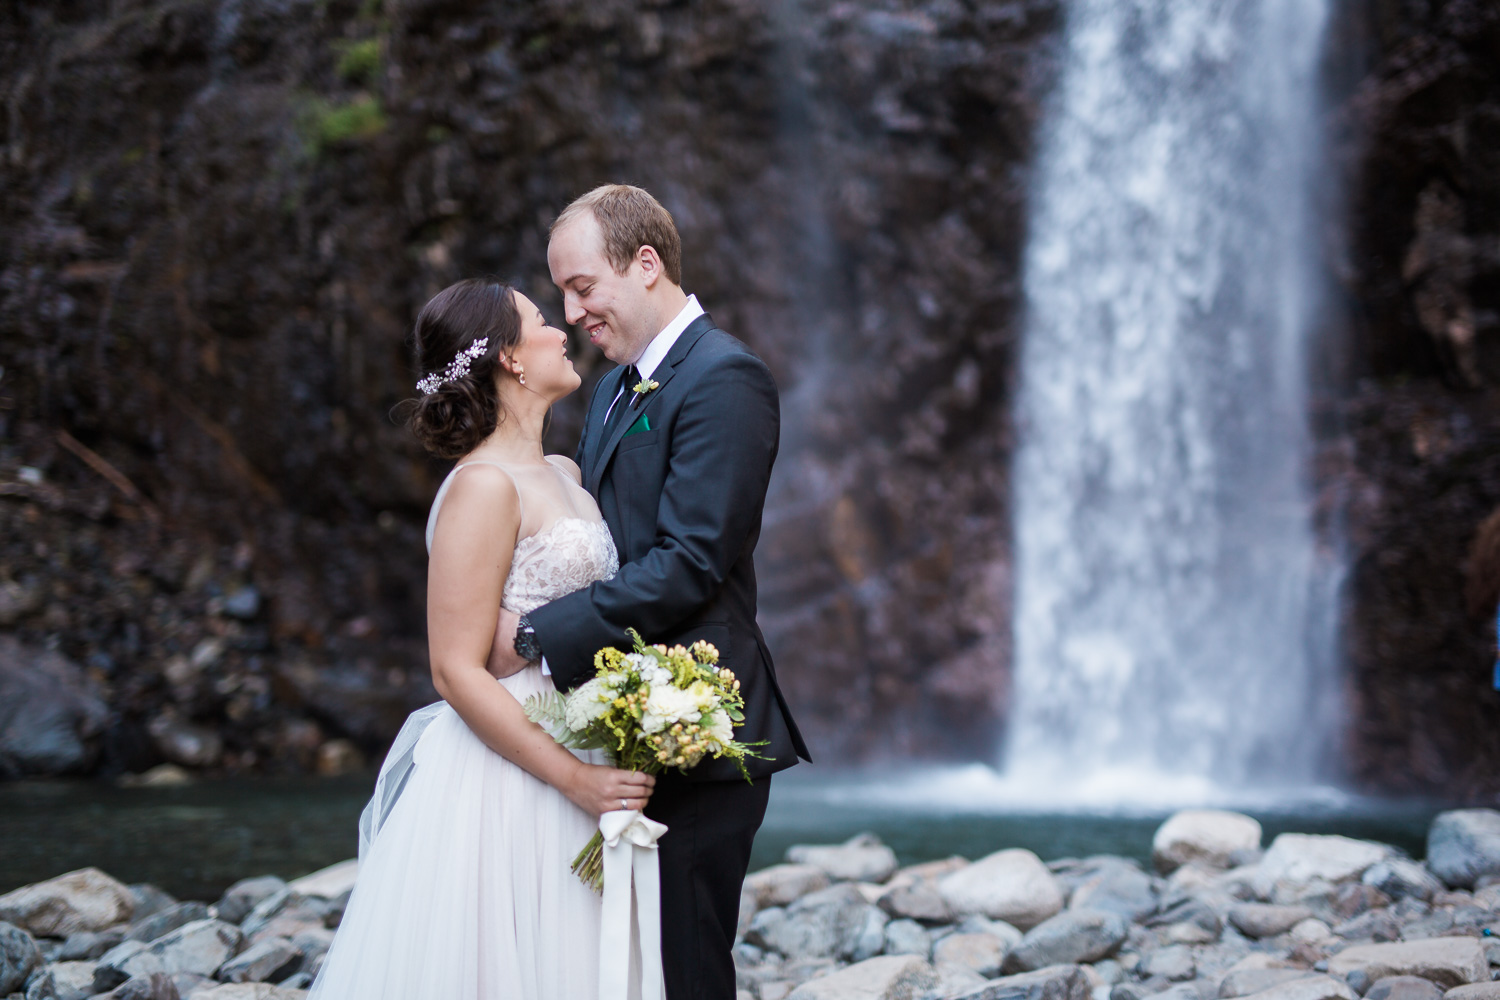 snoqualmie-pass-northwest-wedding-harth-photography-24.jpg